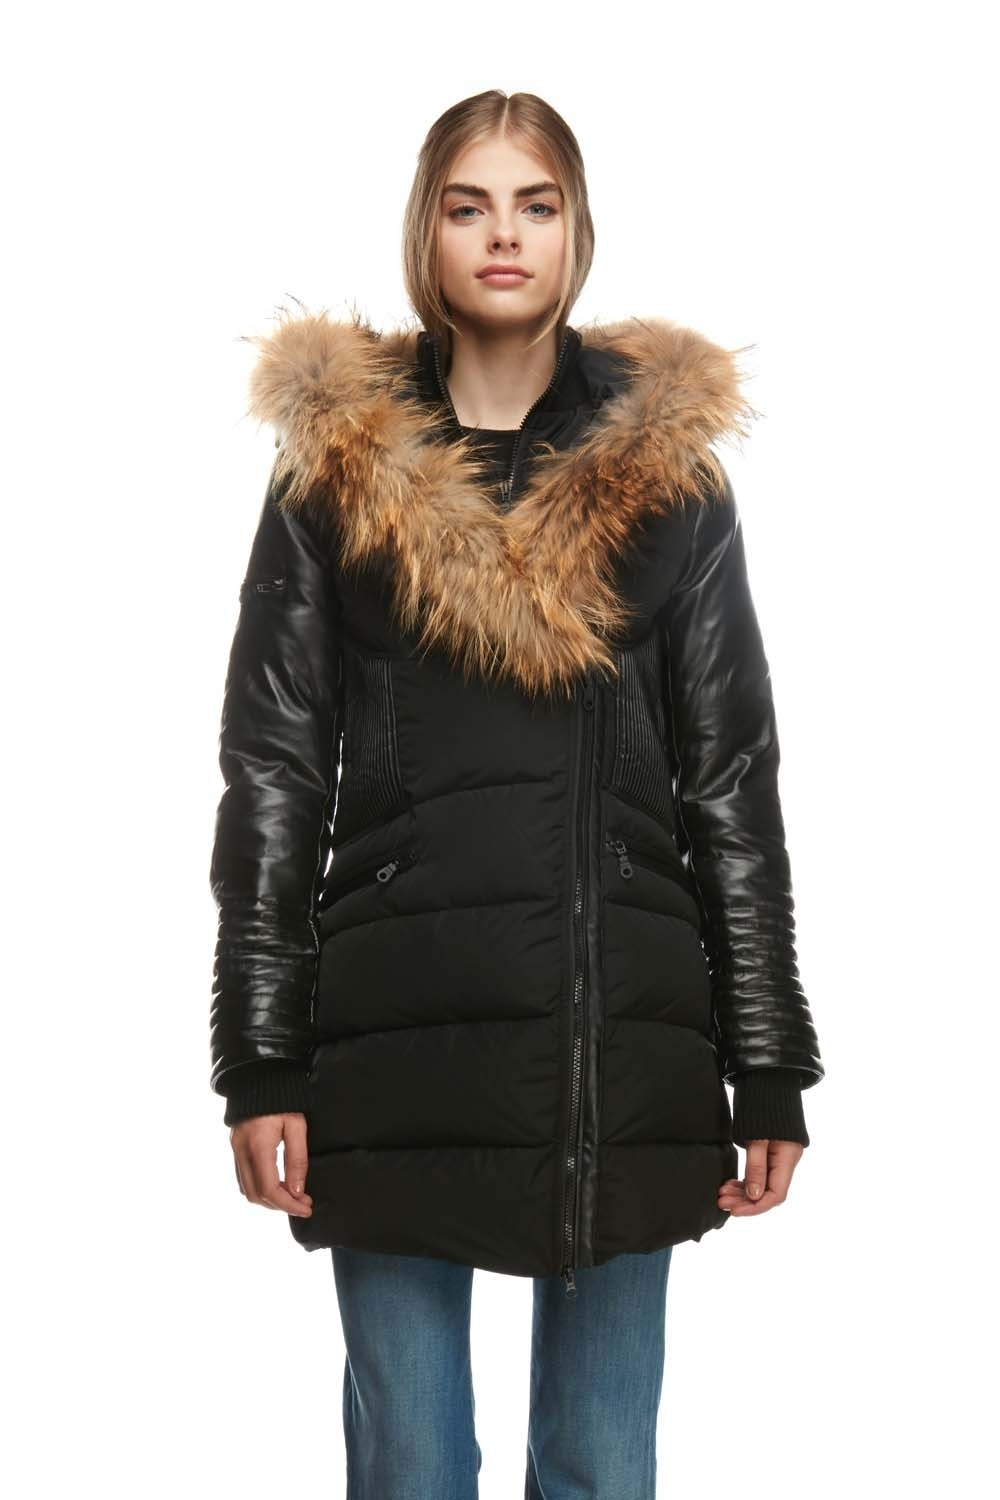 Florence - Winter Jacket For Women